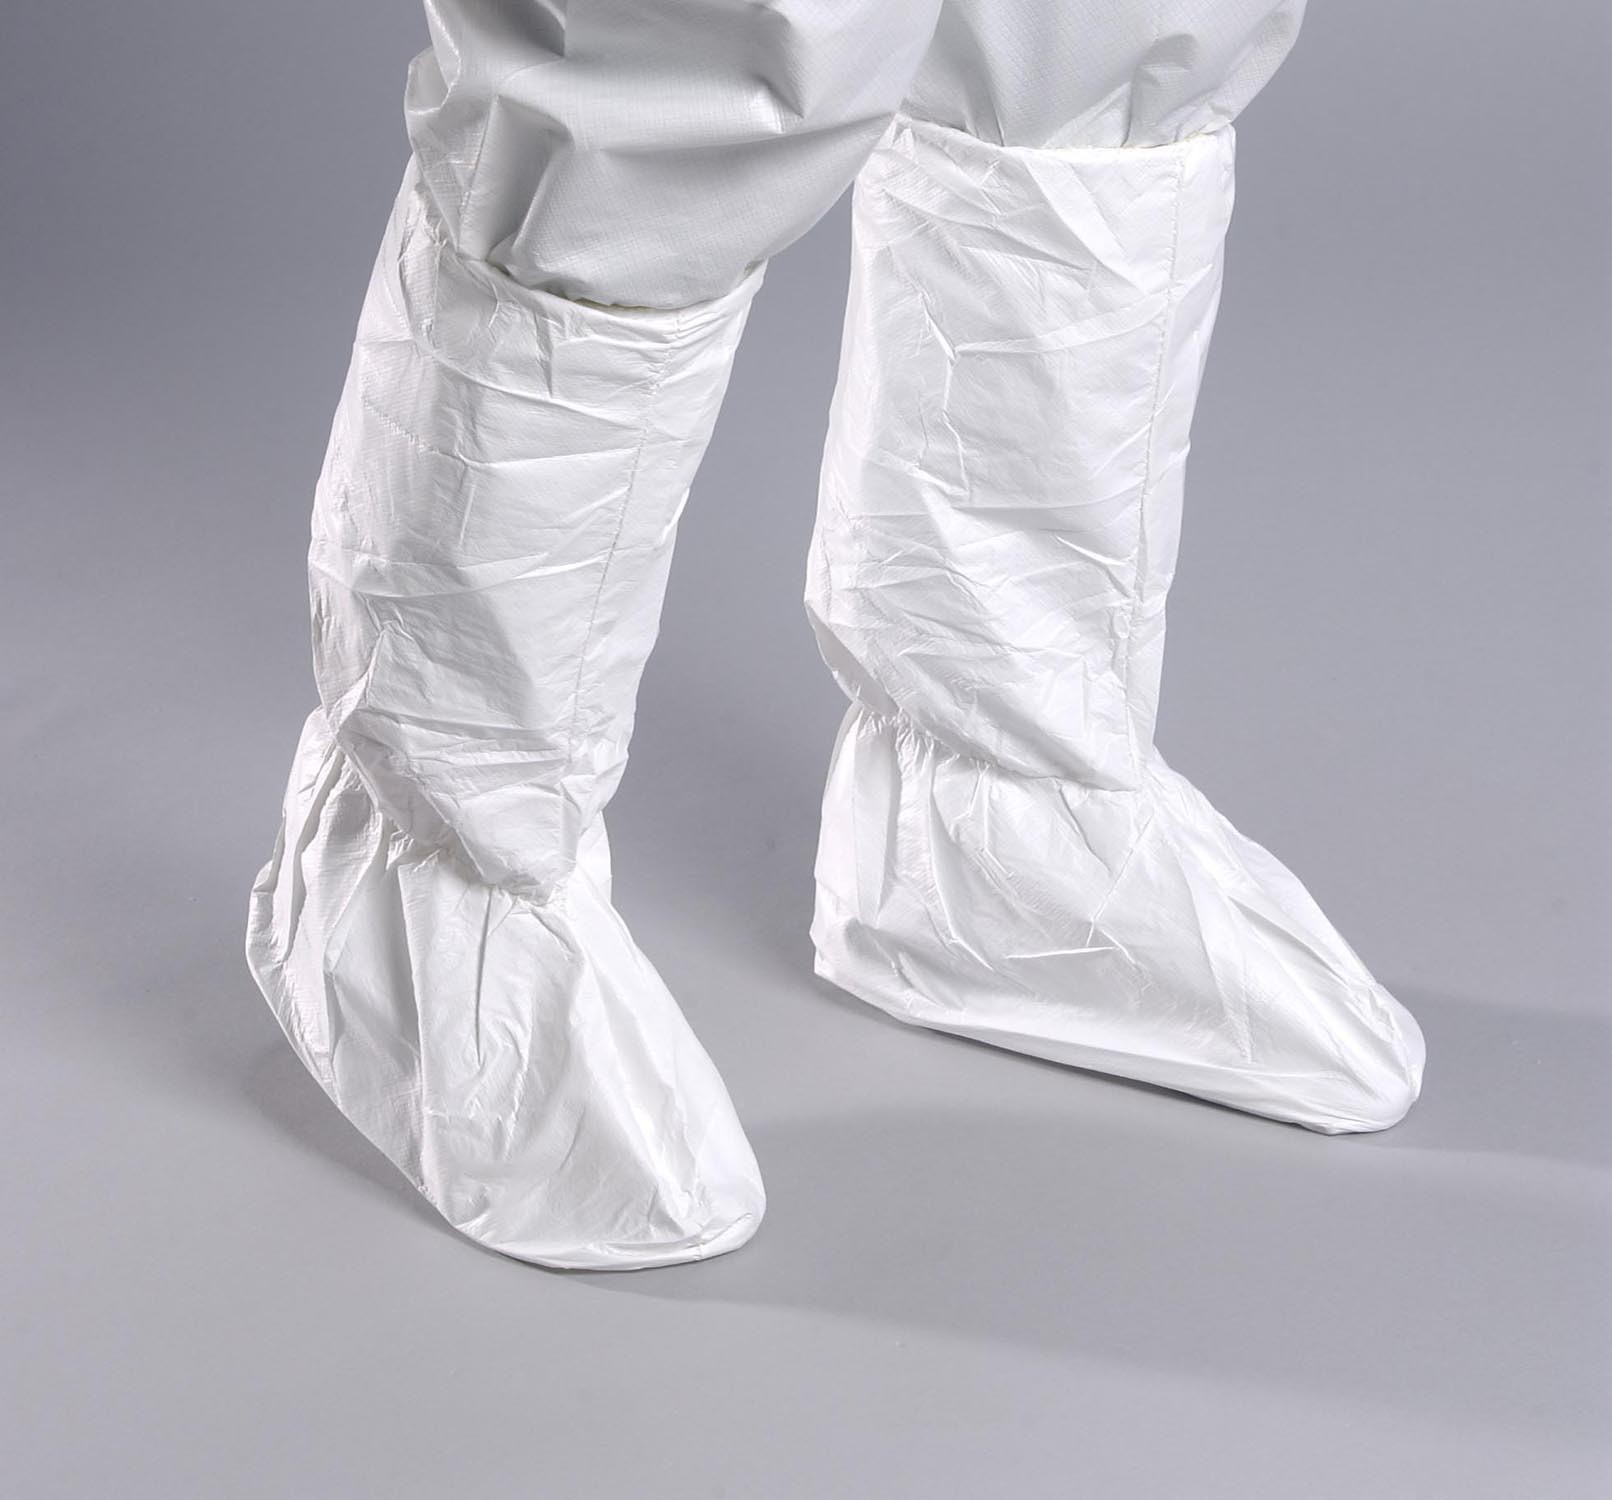 Microbreathe UltraGrip Boot Covers with High, Elastic Top & Ankle